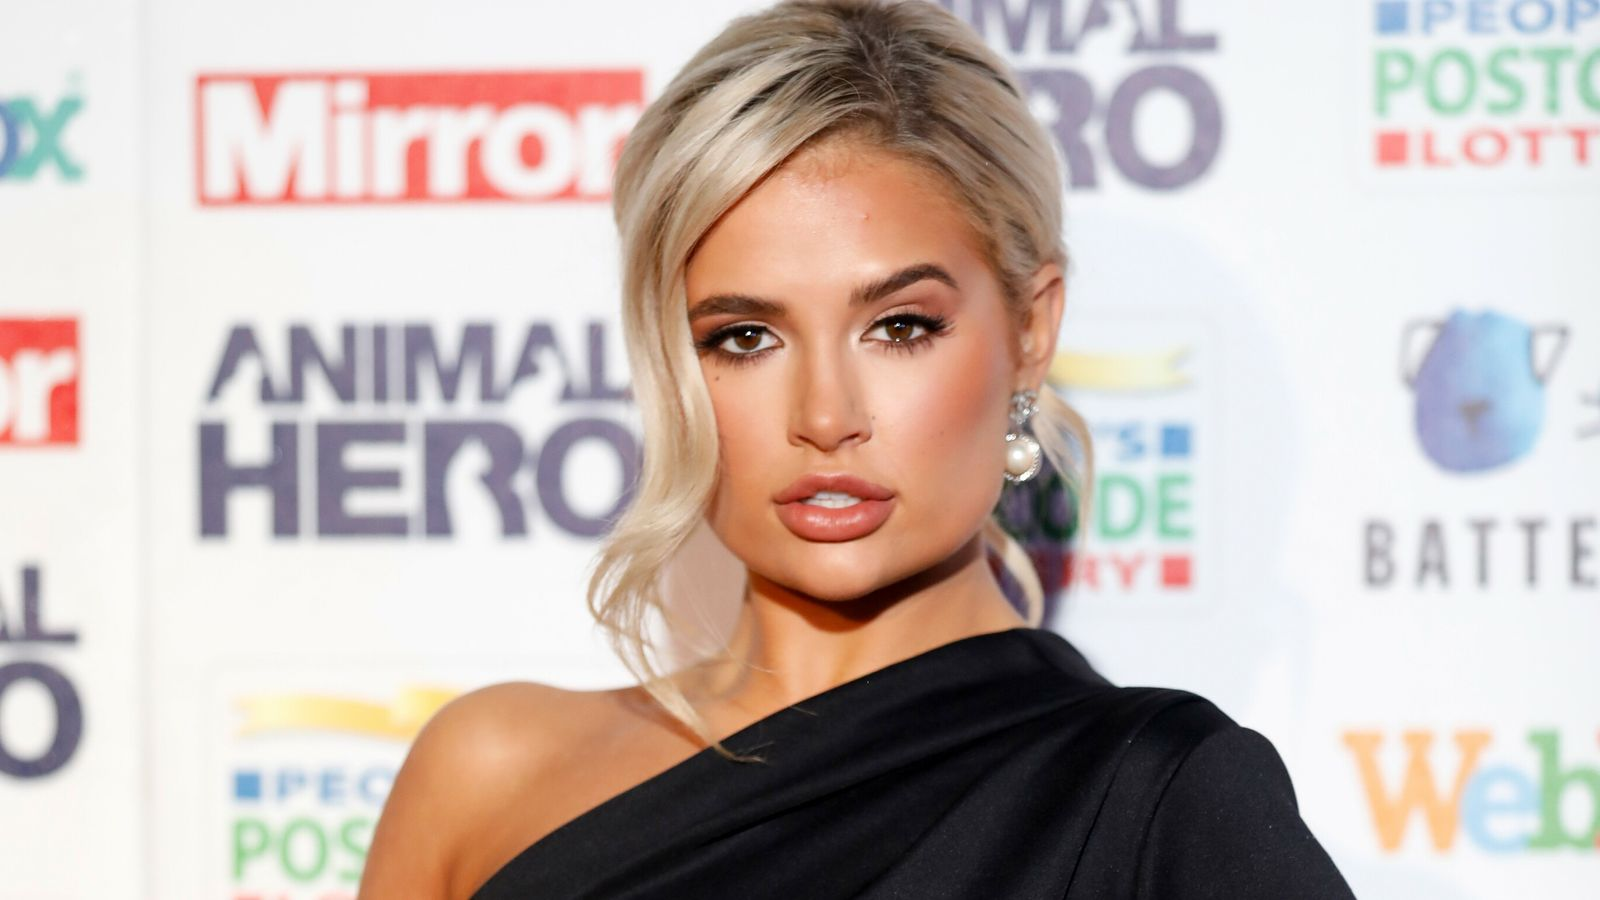 Molly-Mae Hague: Cosmetic filler for young women should not be normalised